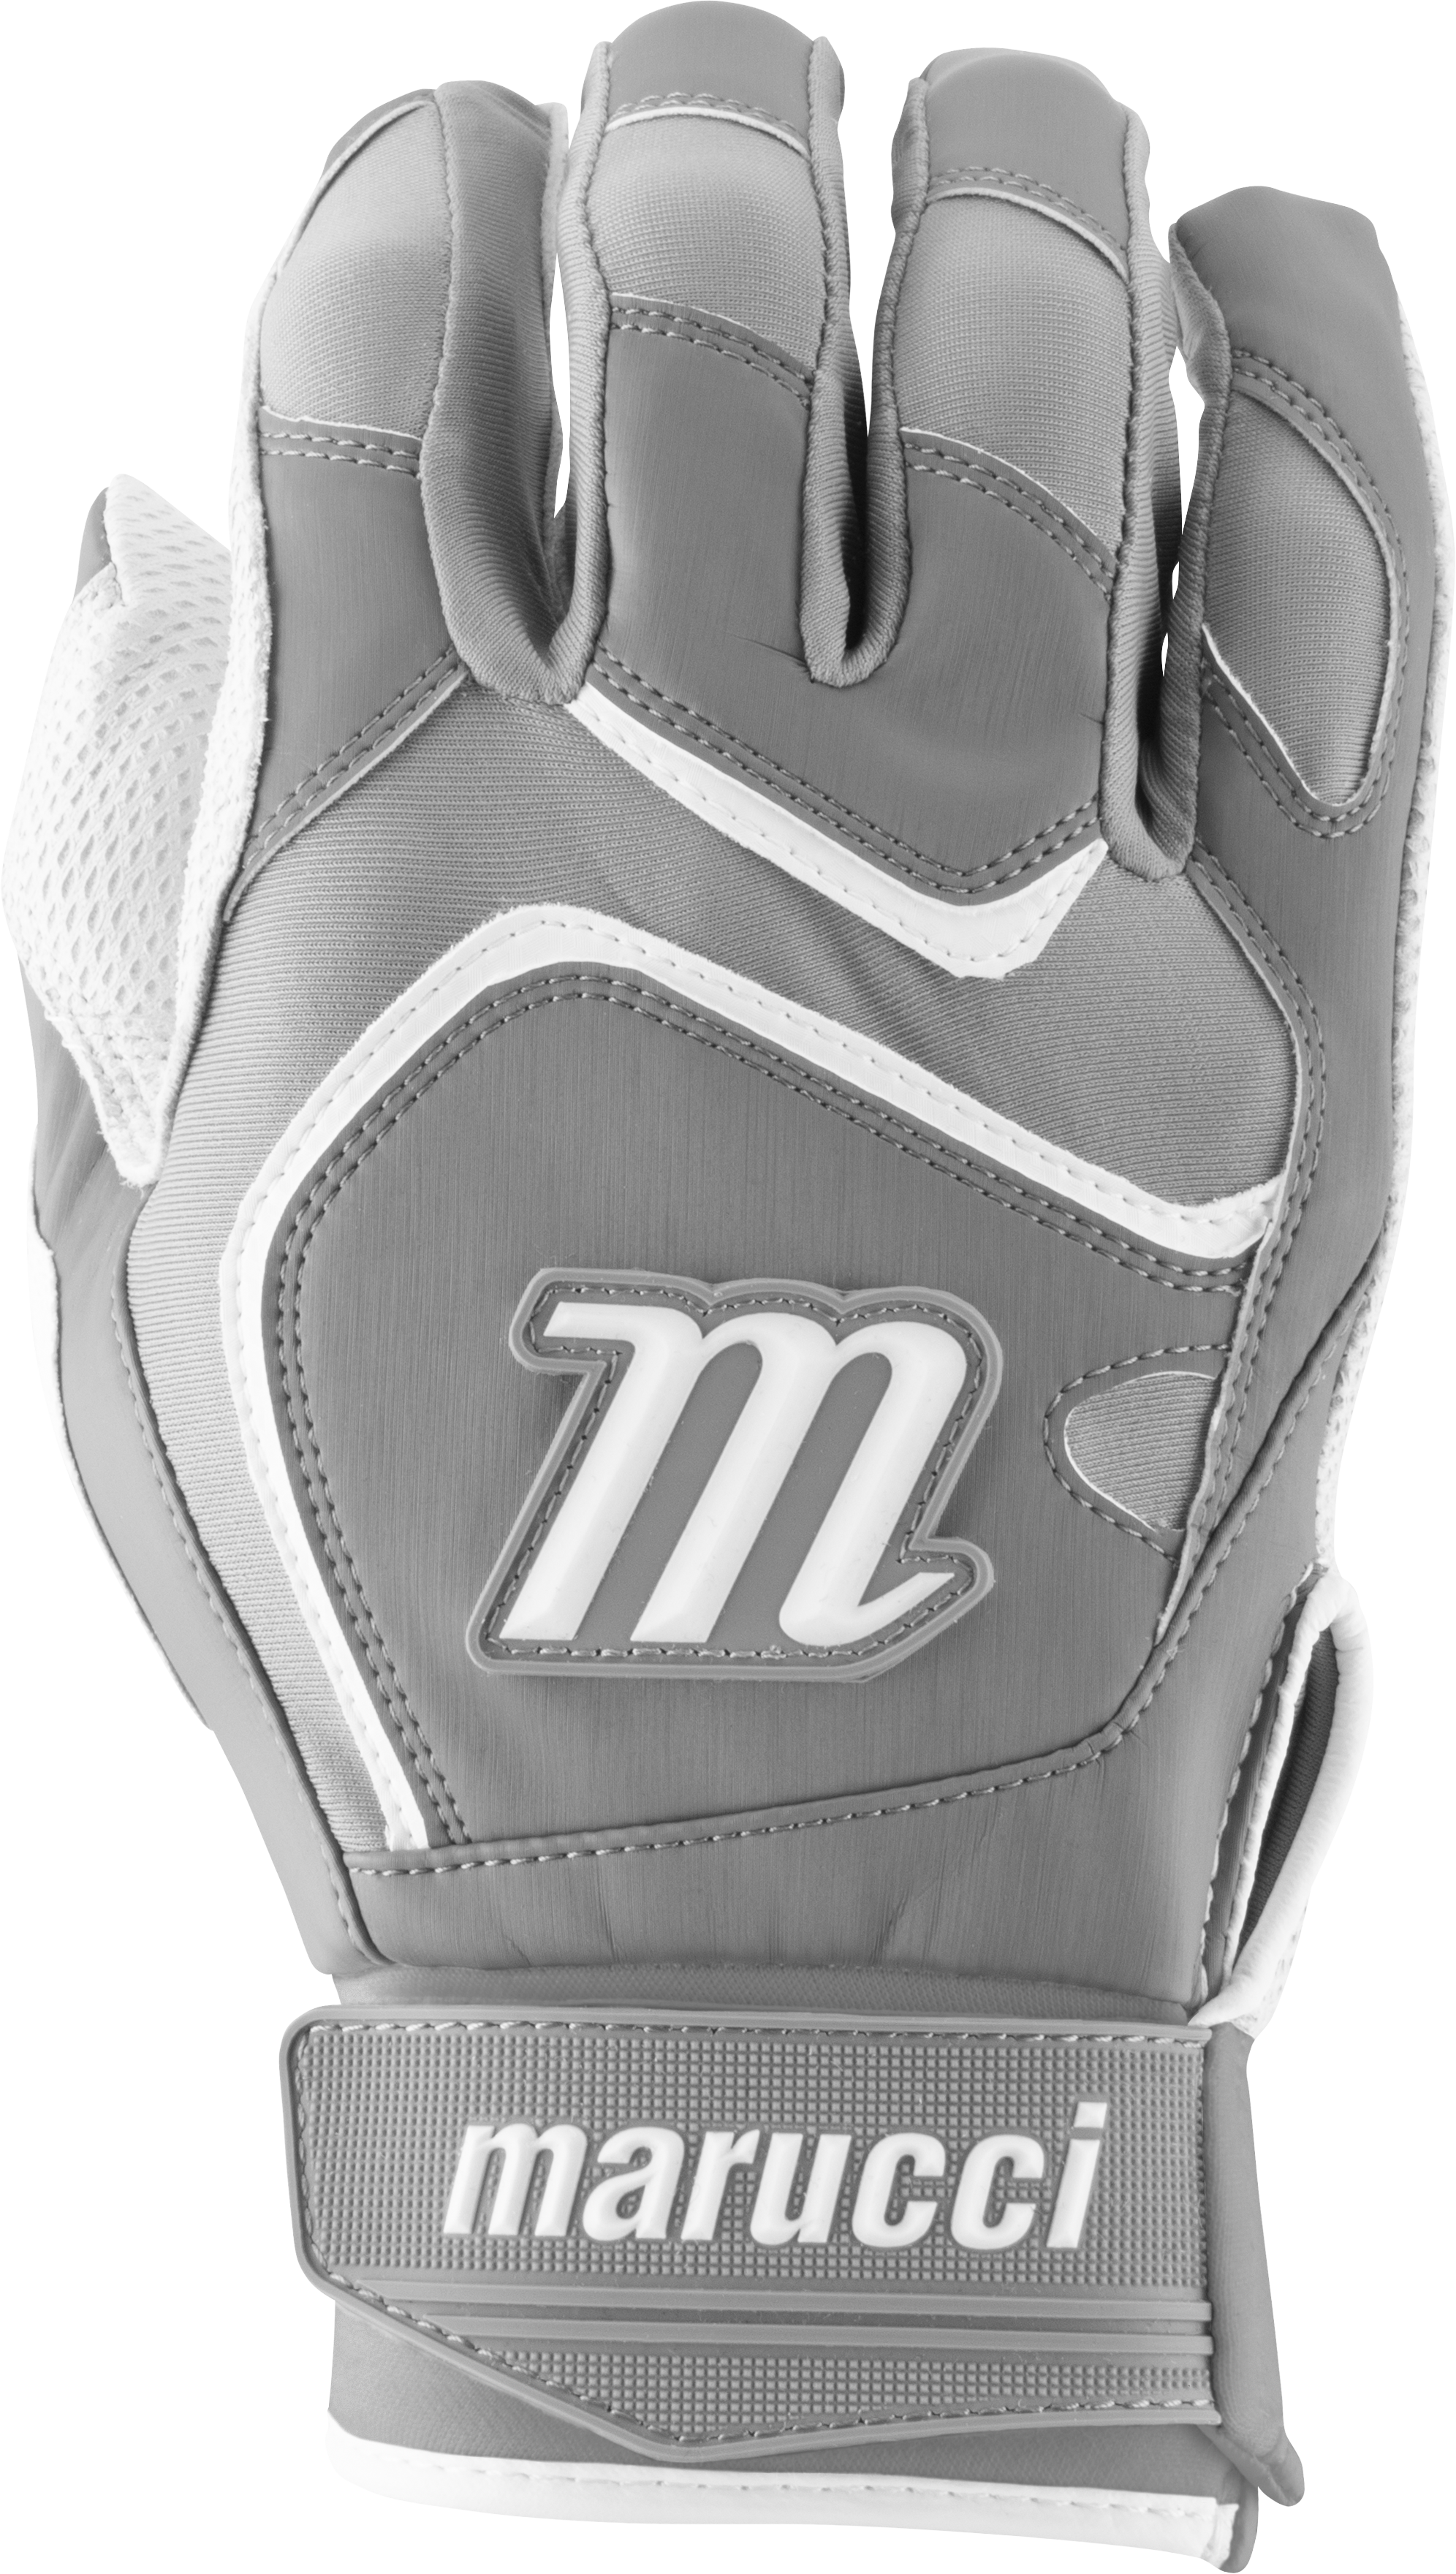 marucci-signature-batting-gloves-mbgsgn2-1-pair-white-grey-adult-small MBGSGN2-WGY-AS Marucci 849817096802 2019 Model MBGSGN2 Consistency And Craftsmanship Commitment To Quality And Understanding